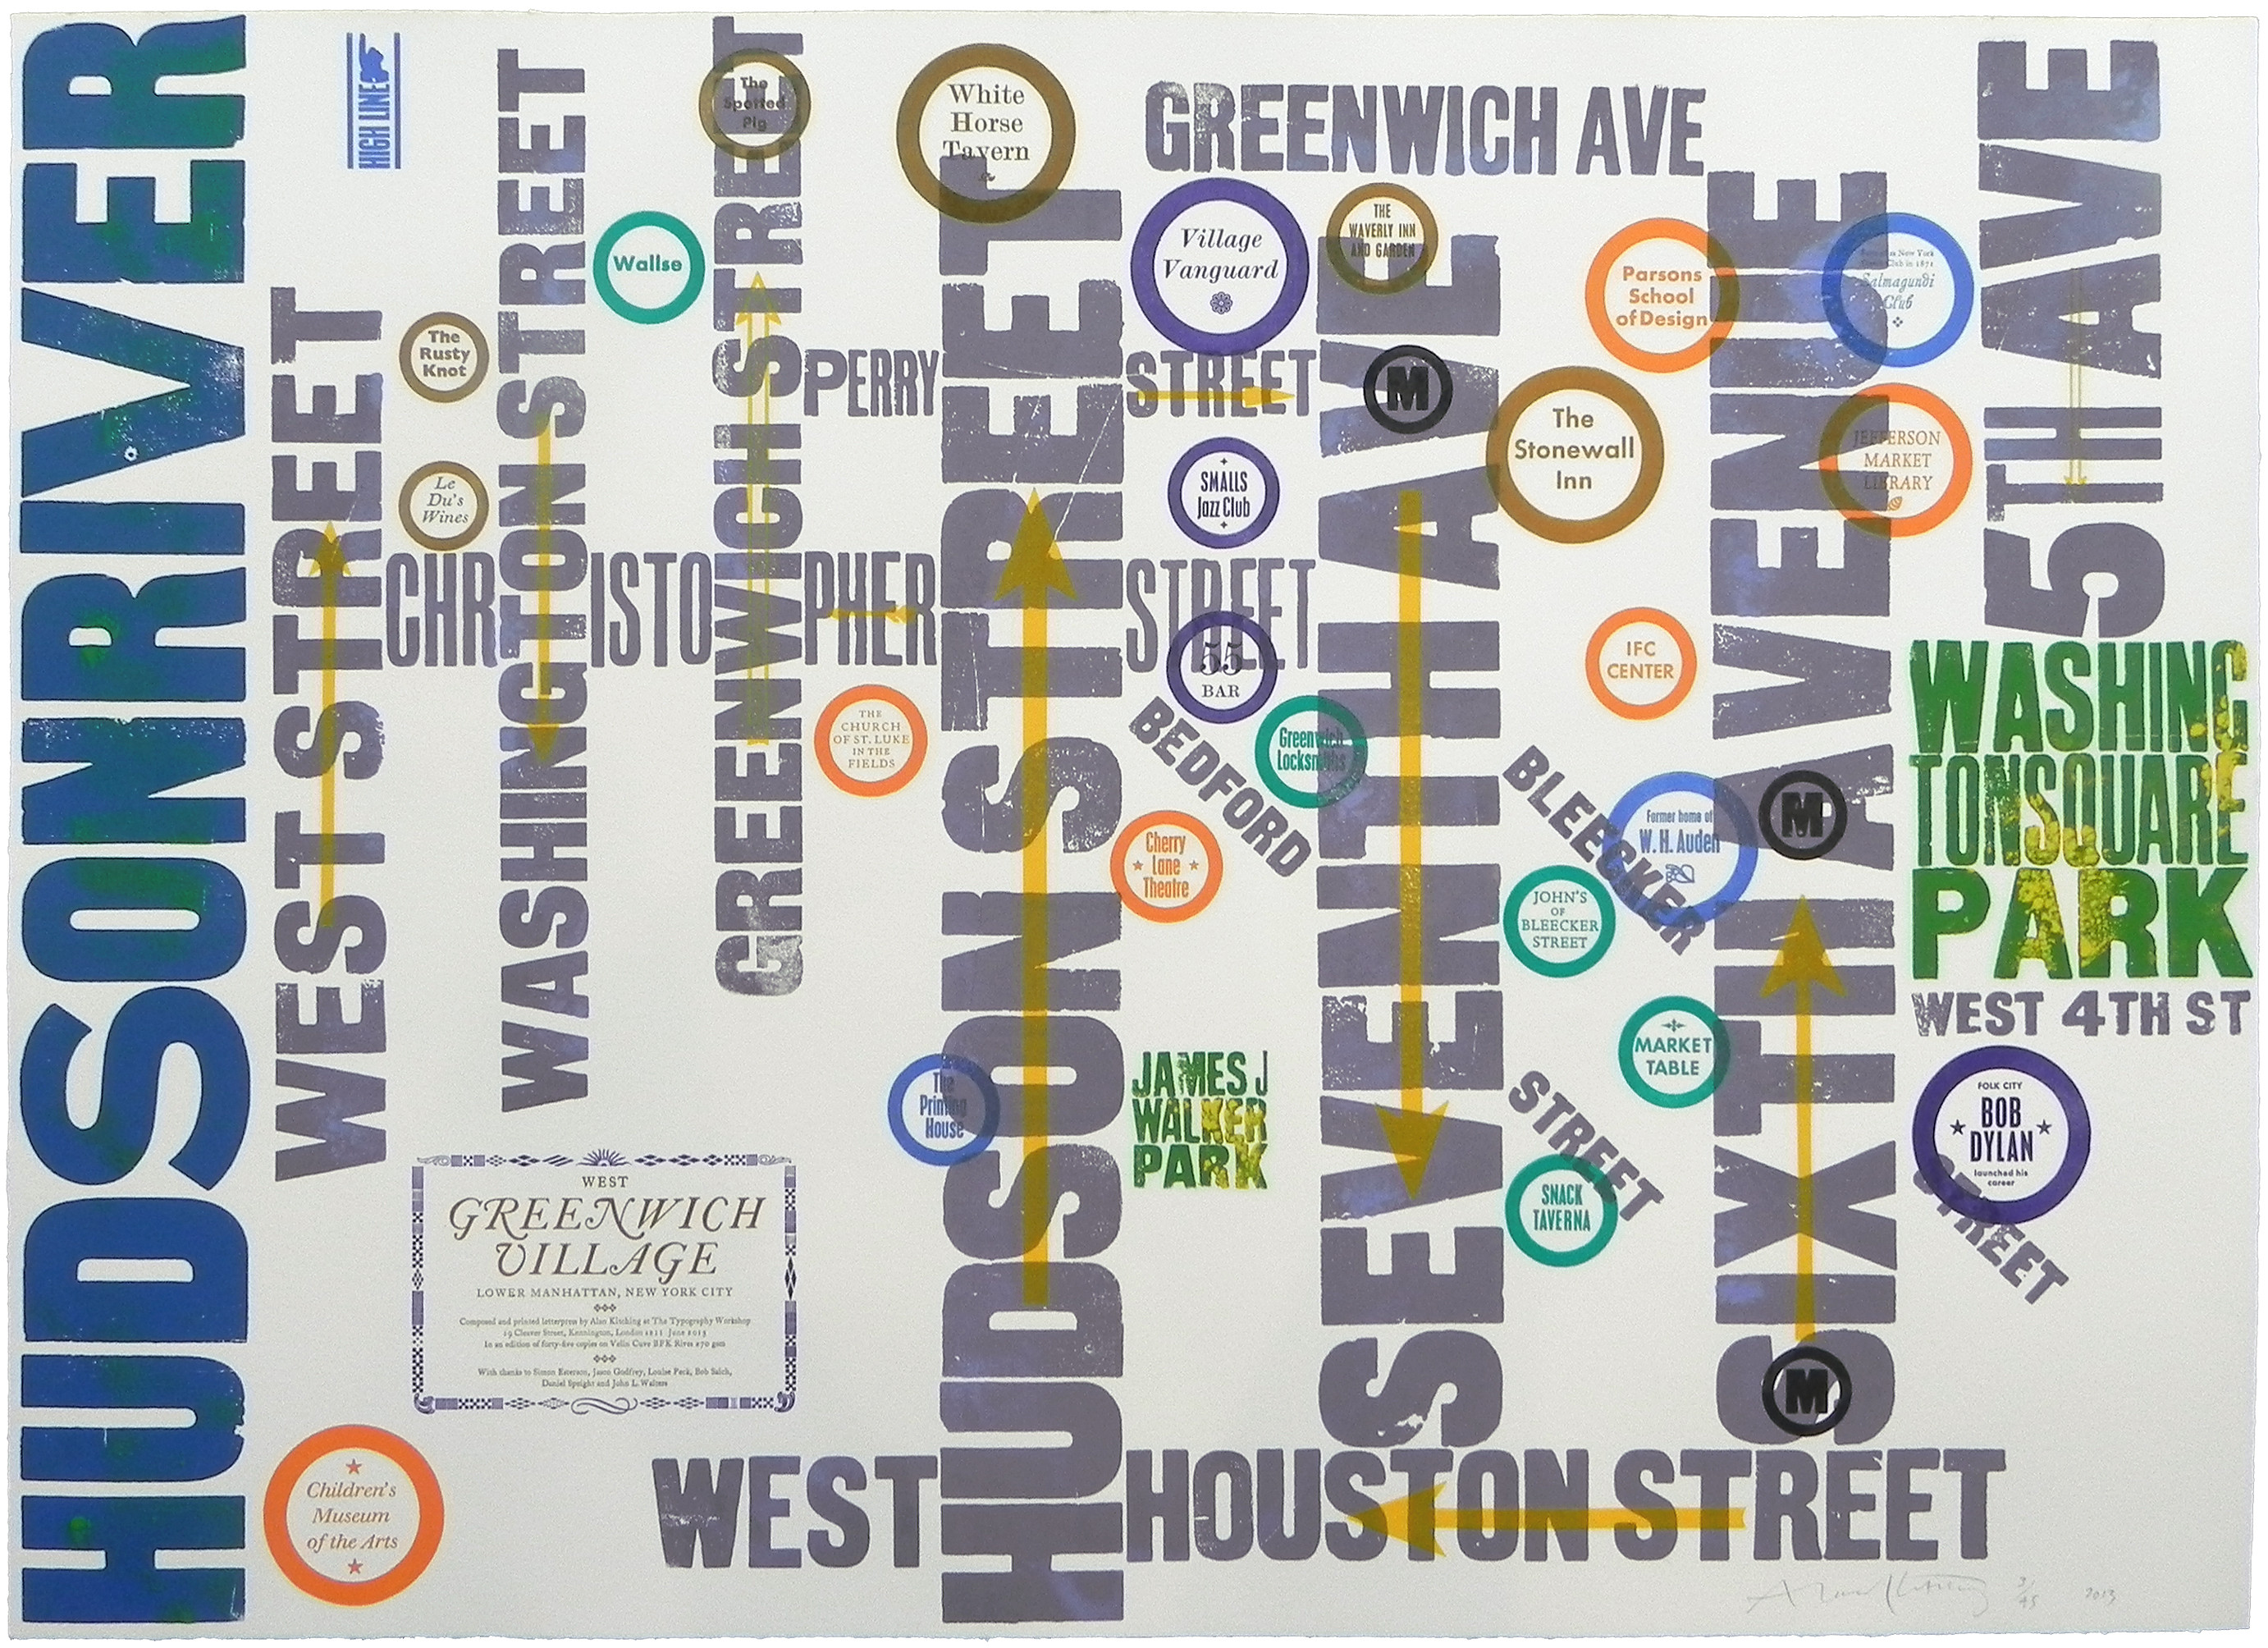 West Greenwich Village. Letterpress print designed by Alan Kitching, 2013.